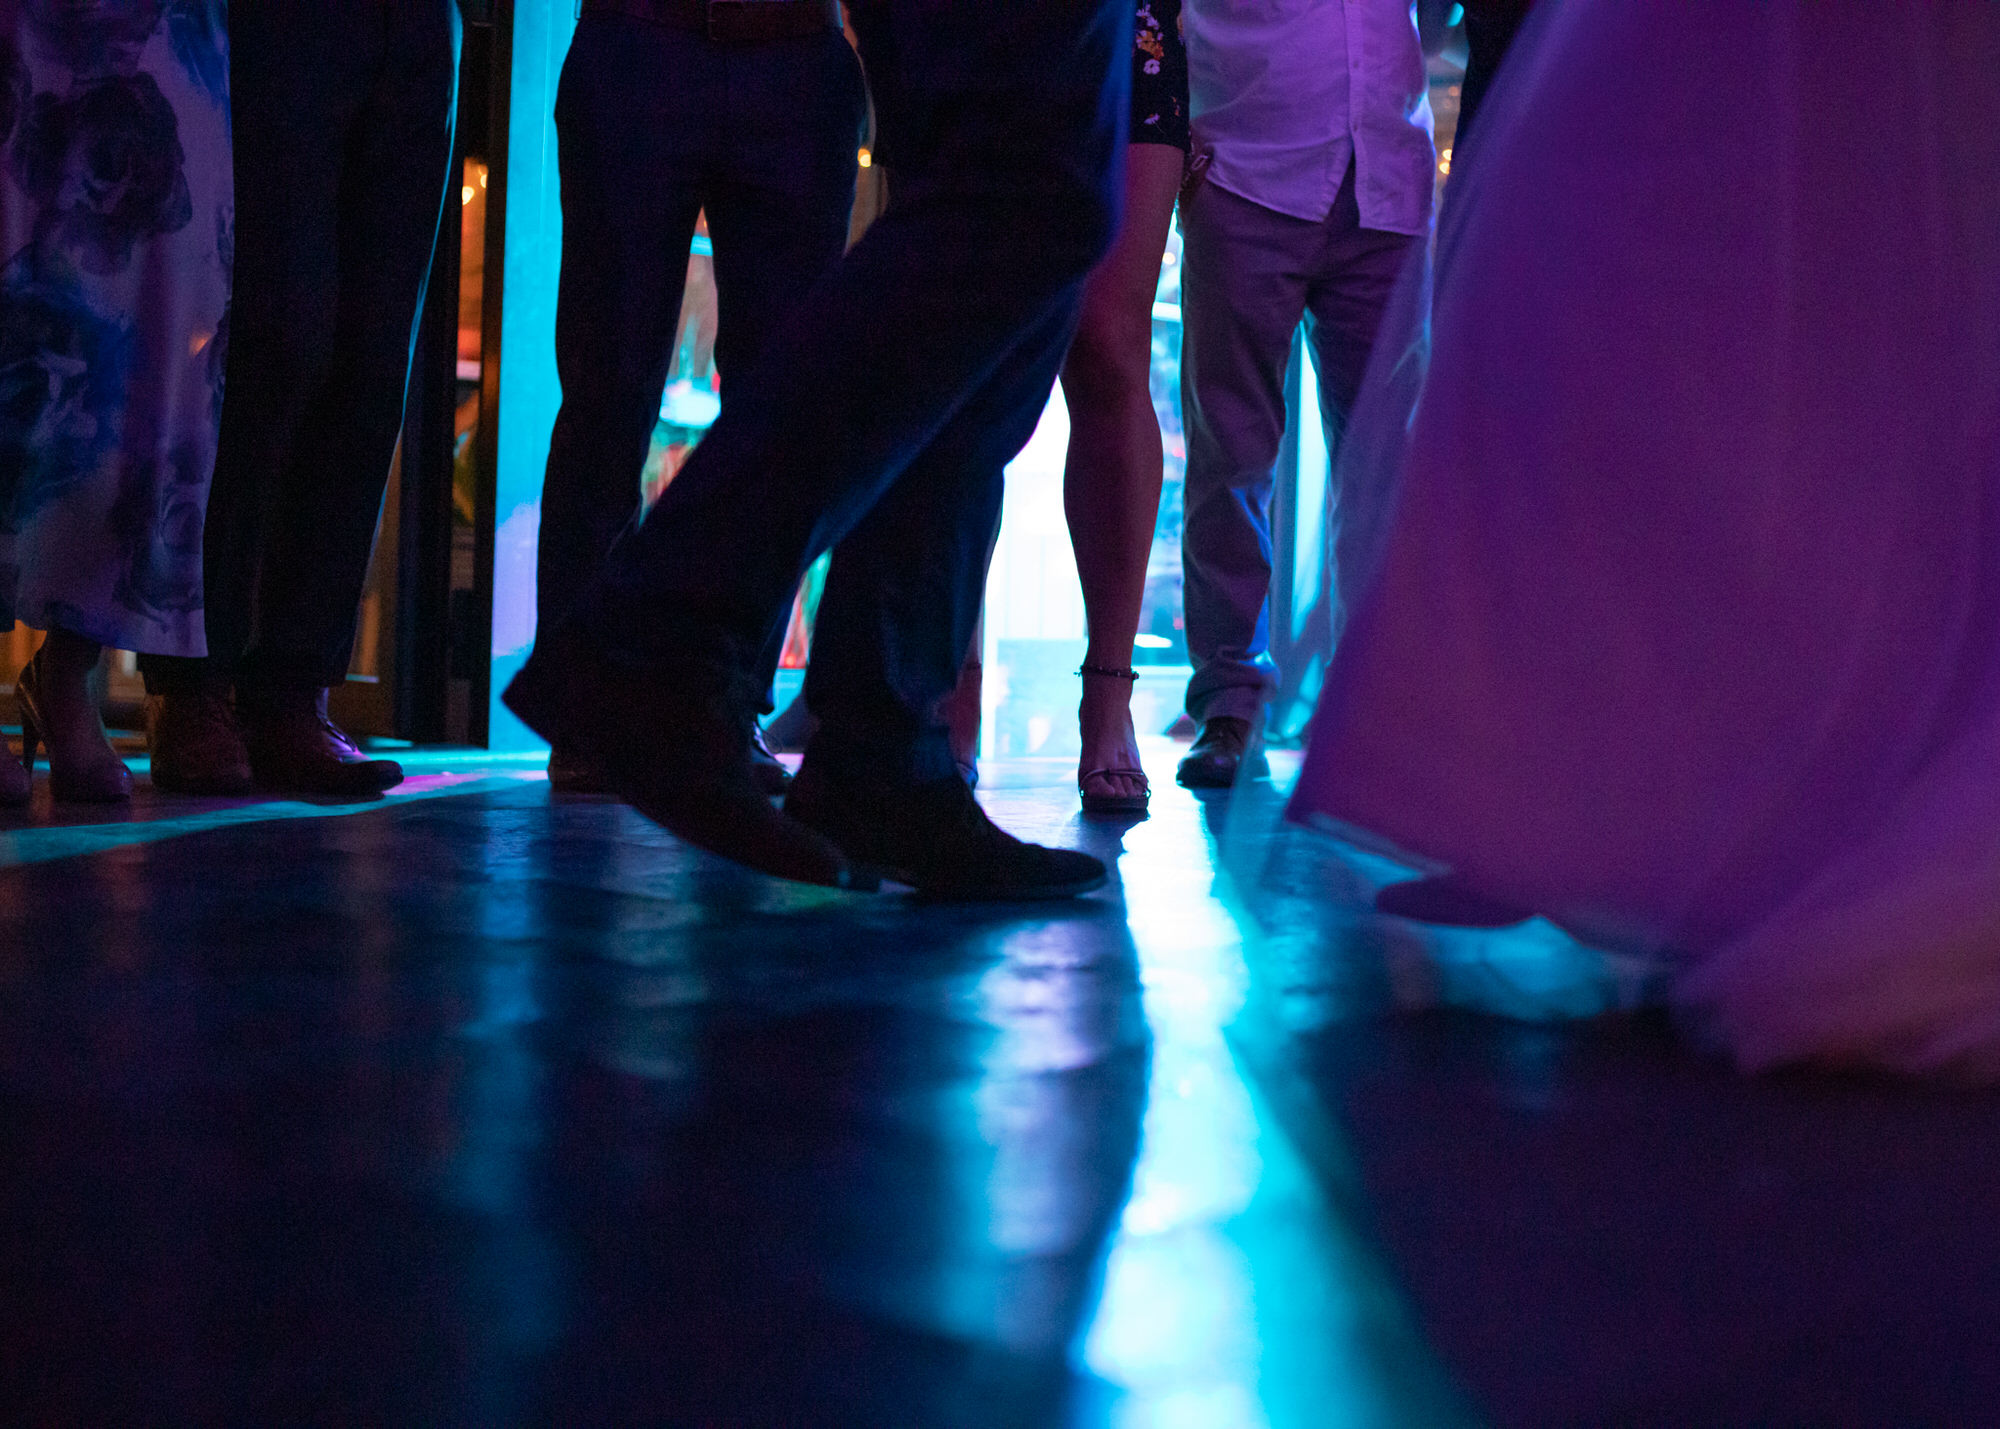 legs and feet of people dancing at a party, photographed by a Stevenage christening photographer